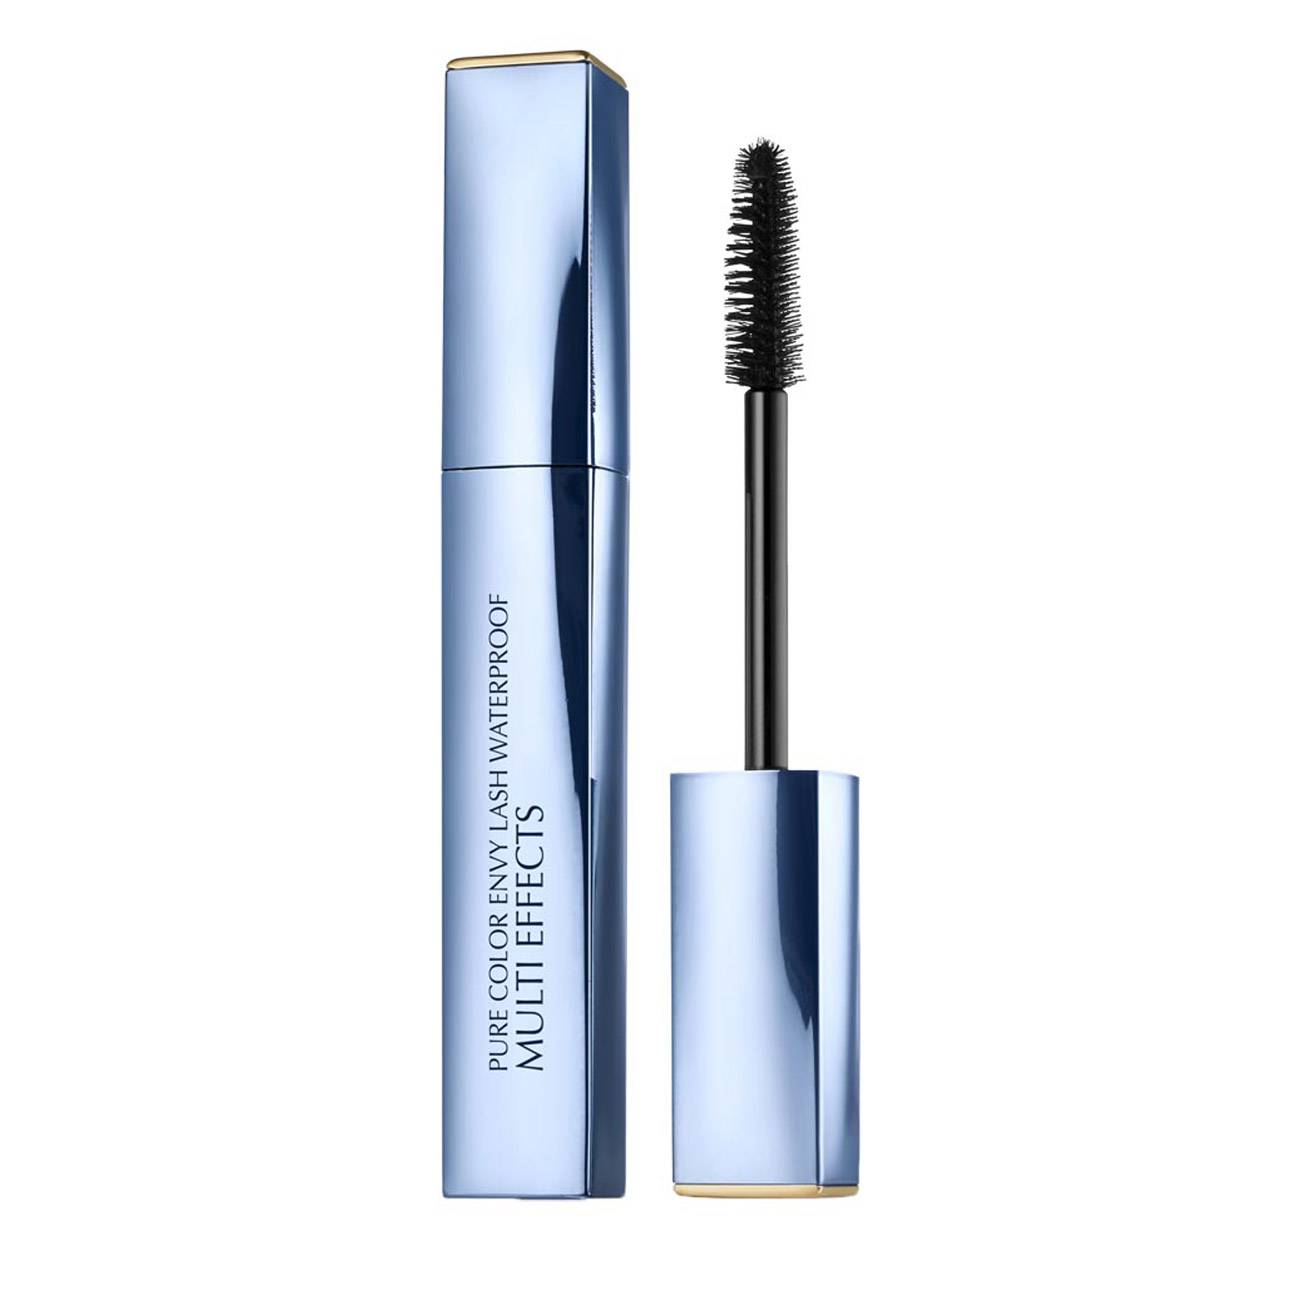 PURE COLOR ENVY MASCARA 01 6ml imagine produs